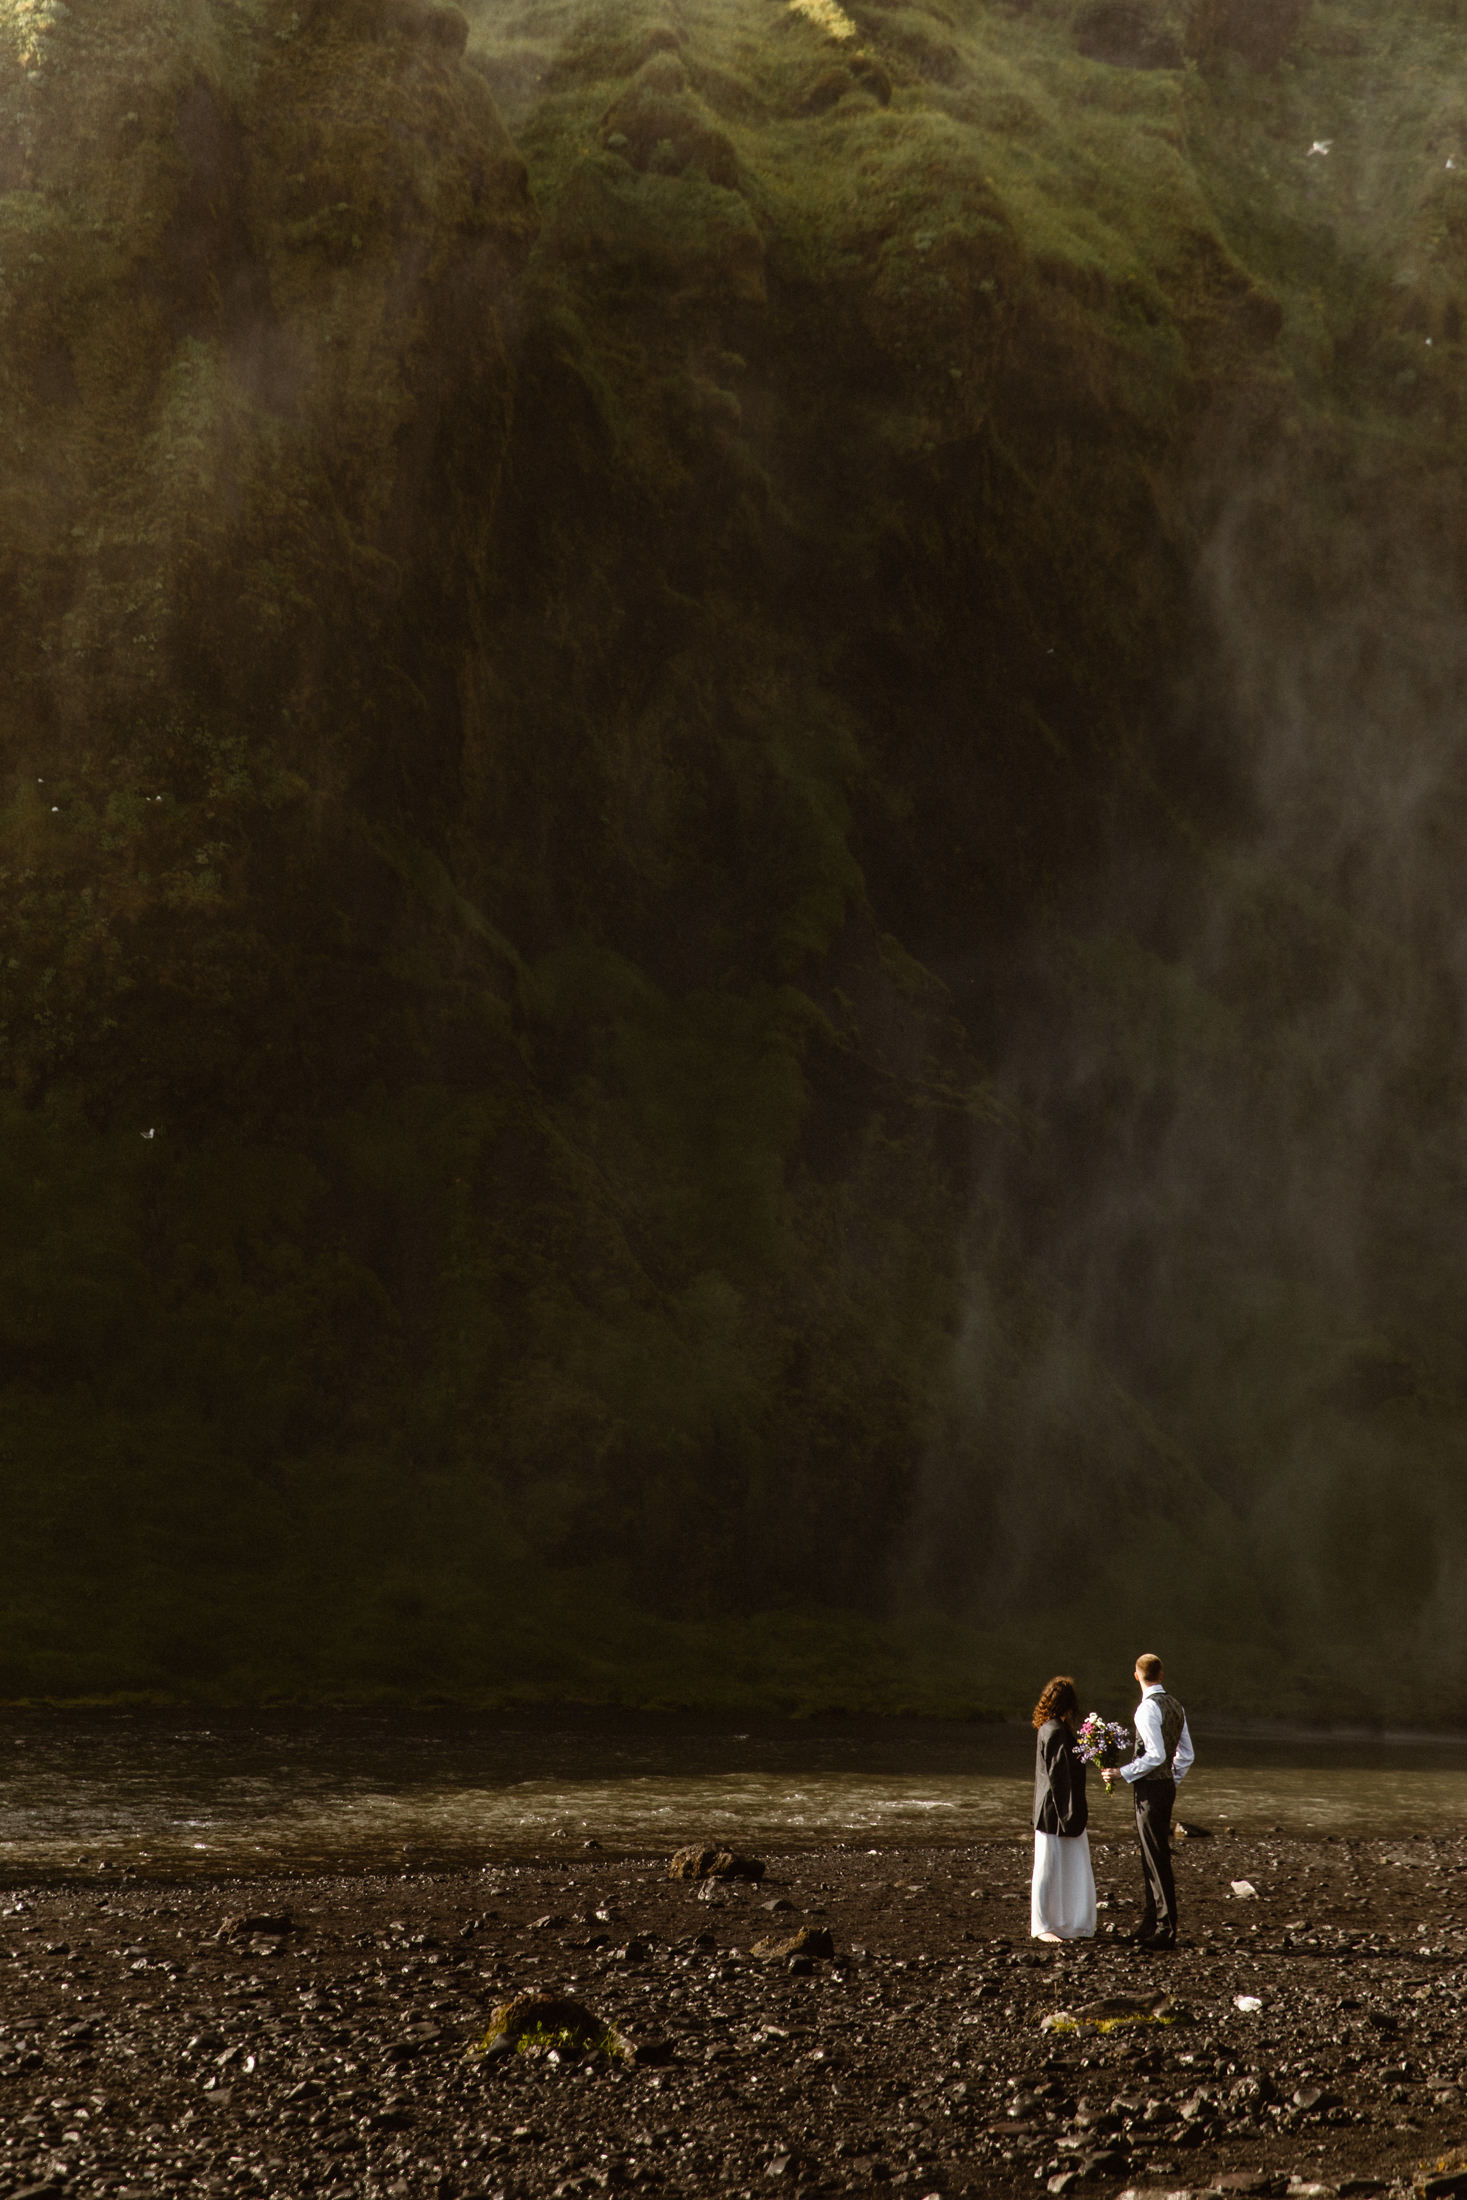 Eloping in Iceland by a waterfall a couple stands in awe at the moss covered cliffs in Iceland.